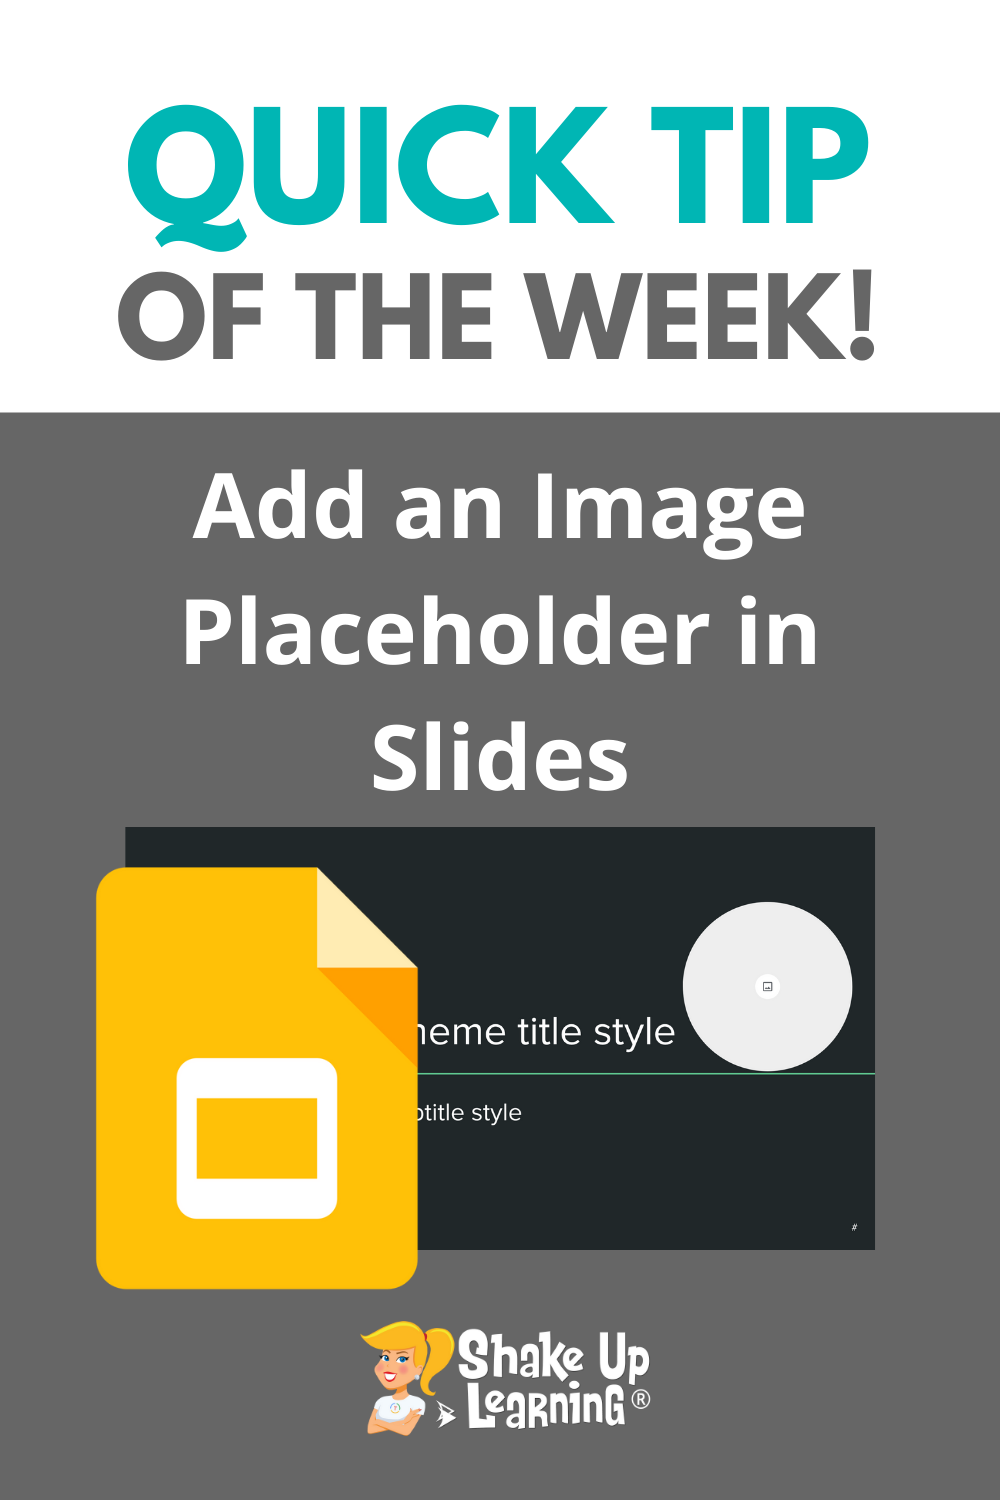 How to Add an Image Placeholder in Google Slides